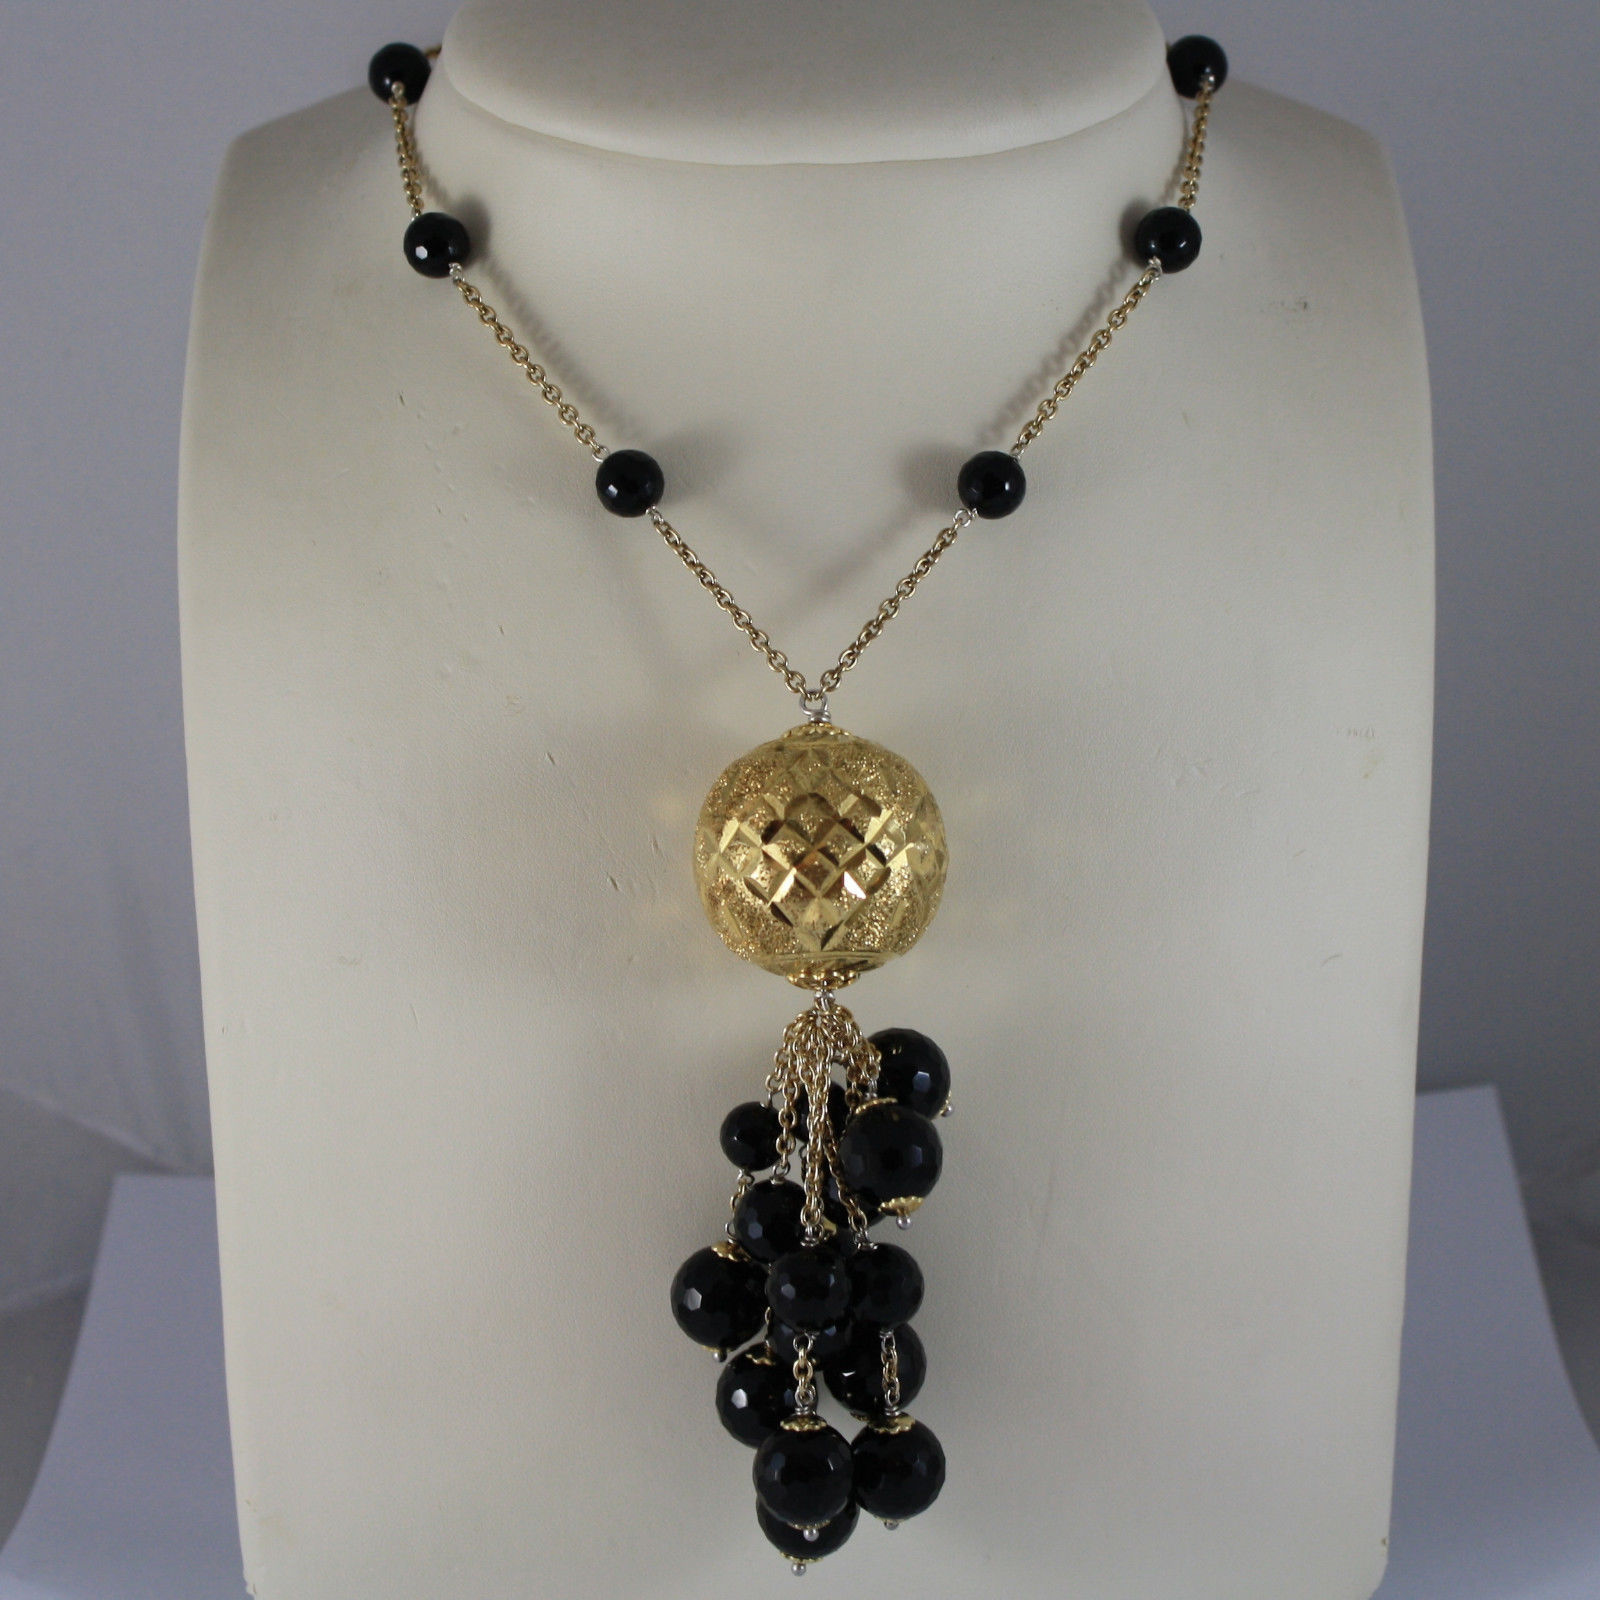 .925 RHODIUM SILVER YELLOW GOLD PLATED NECKLACE WITH BLACK ONYX AND BIG BALL